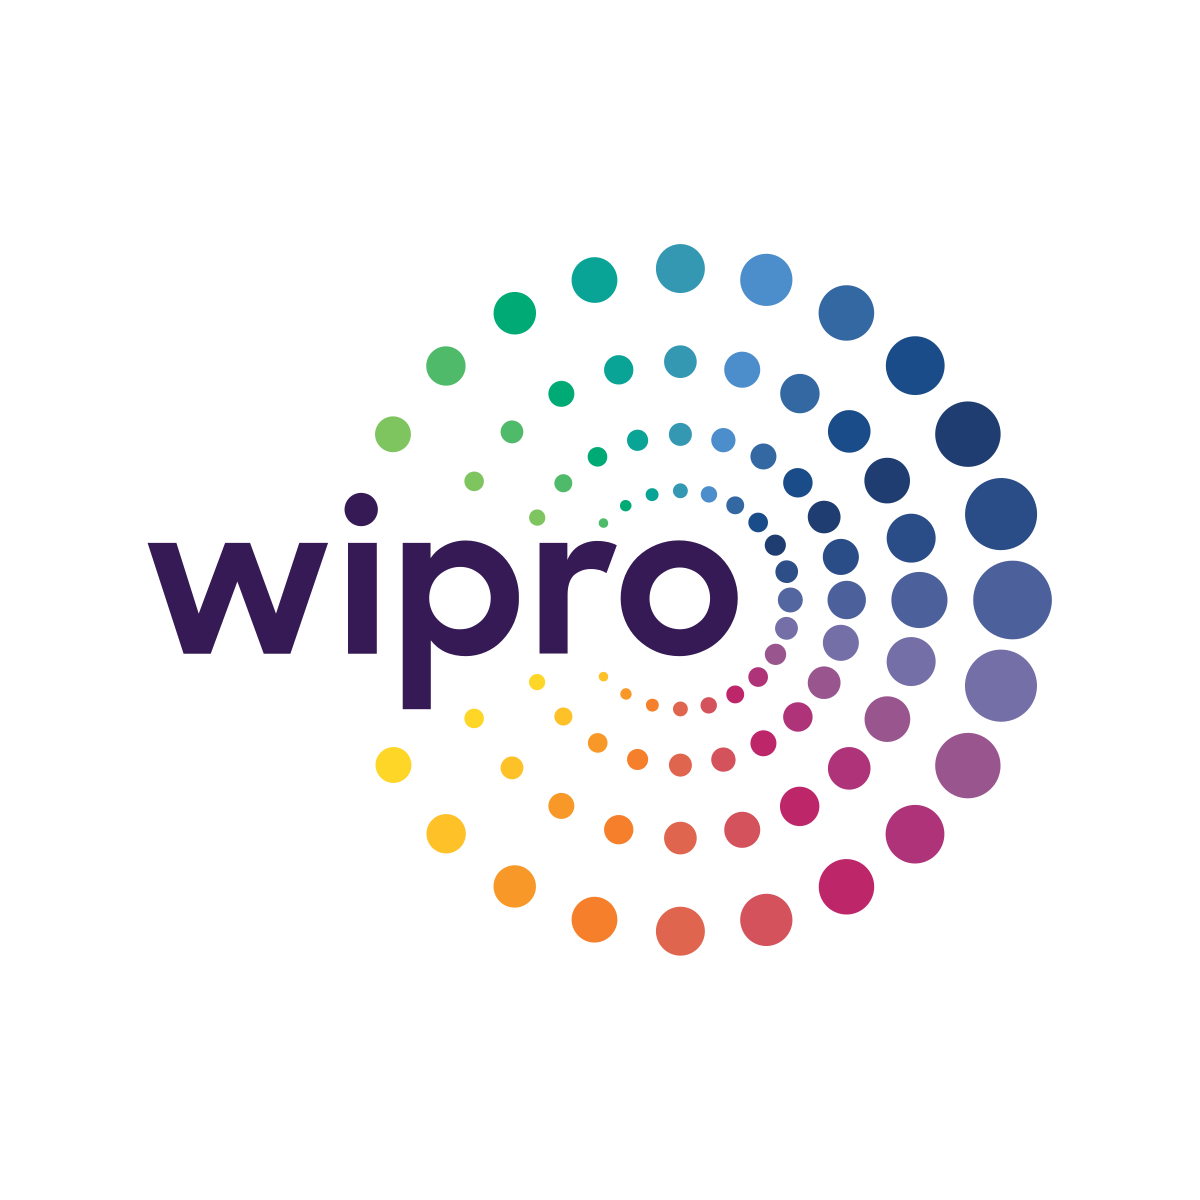 The logo for Wipro